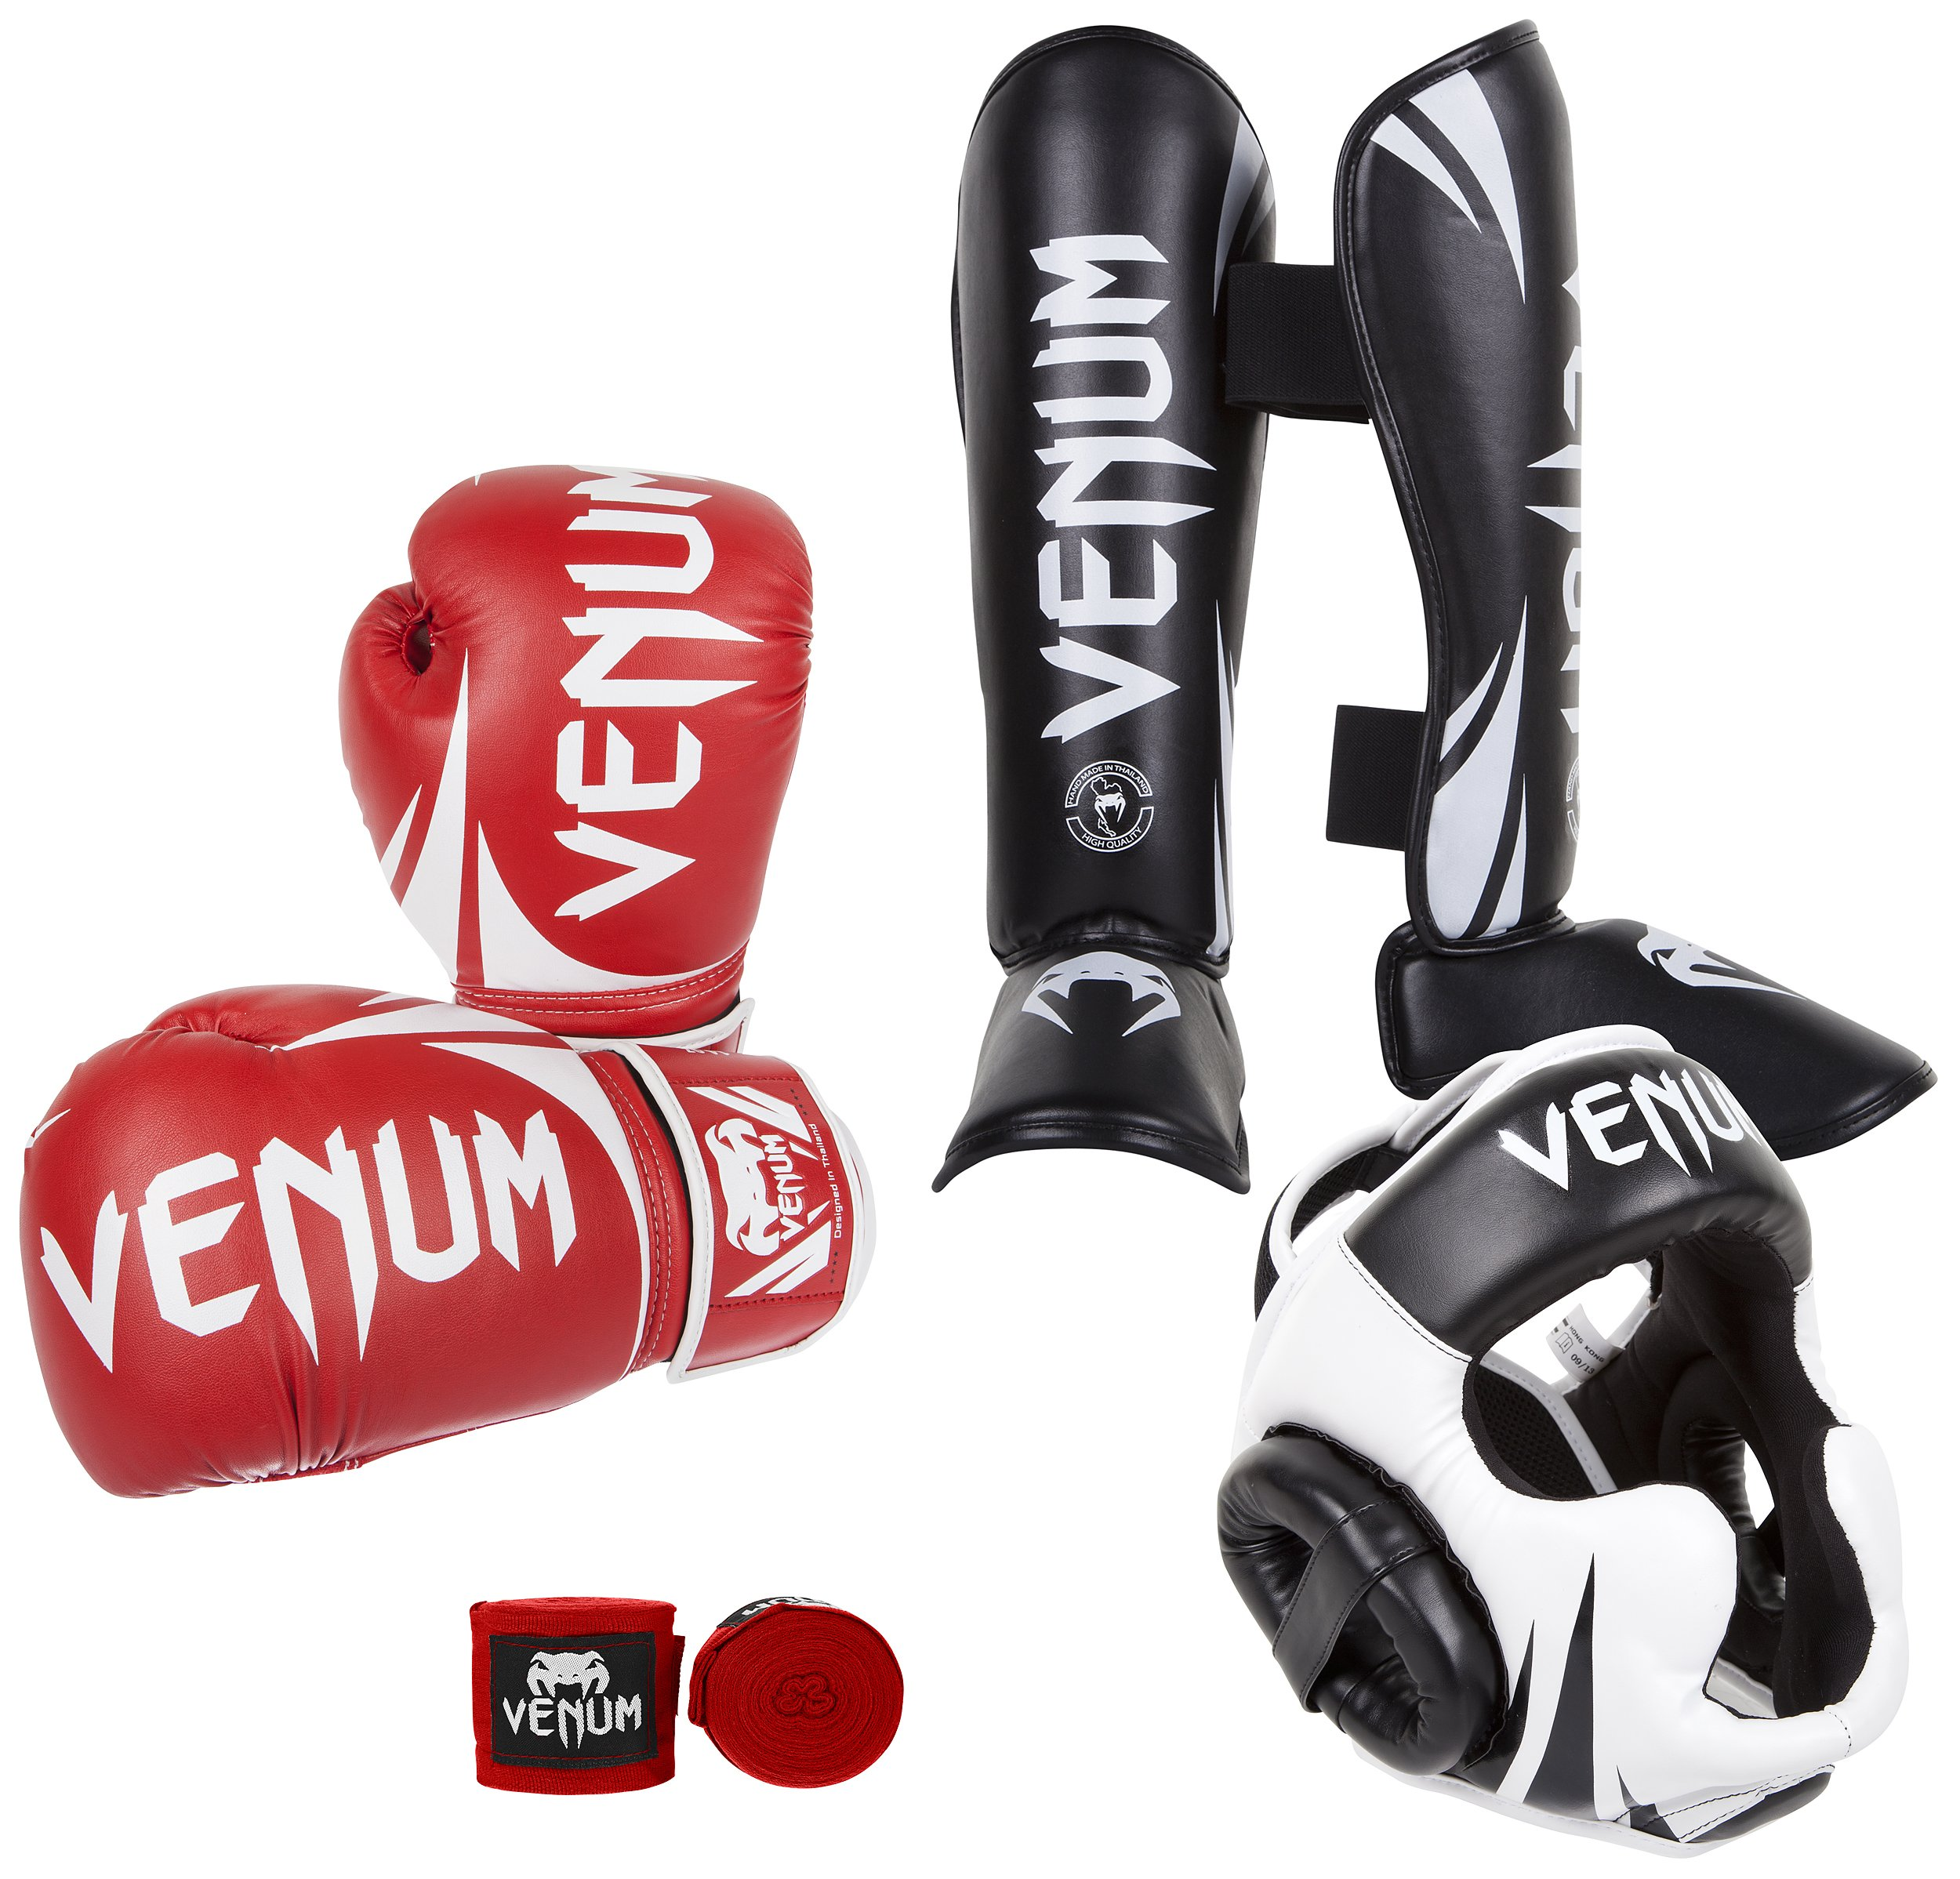 Venum Challenger 2.0 Standup Bundle, Red Gloves, Black Shinguards, Black/White Headgear, Red Handwraps, 12-Ounces Gloves, X-Large Shinguards, Headgear One Size, Handwraps 4M by Venum